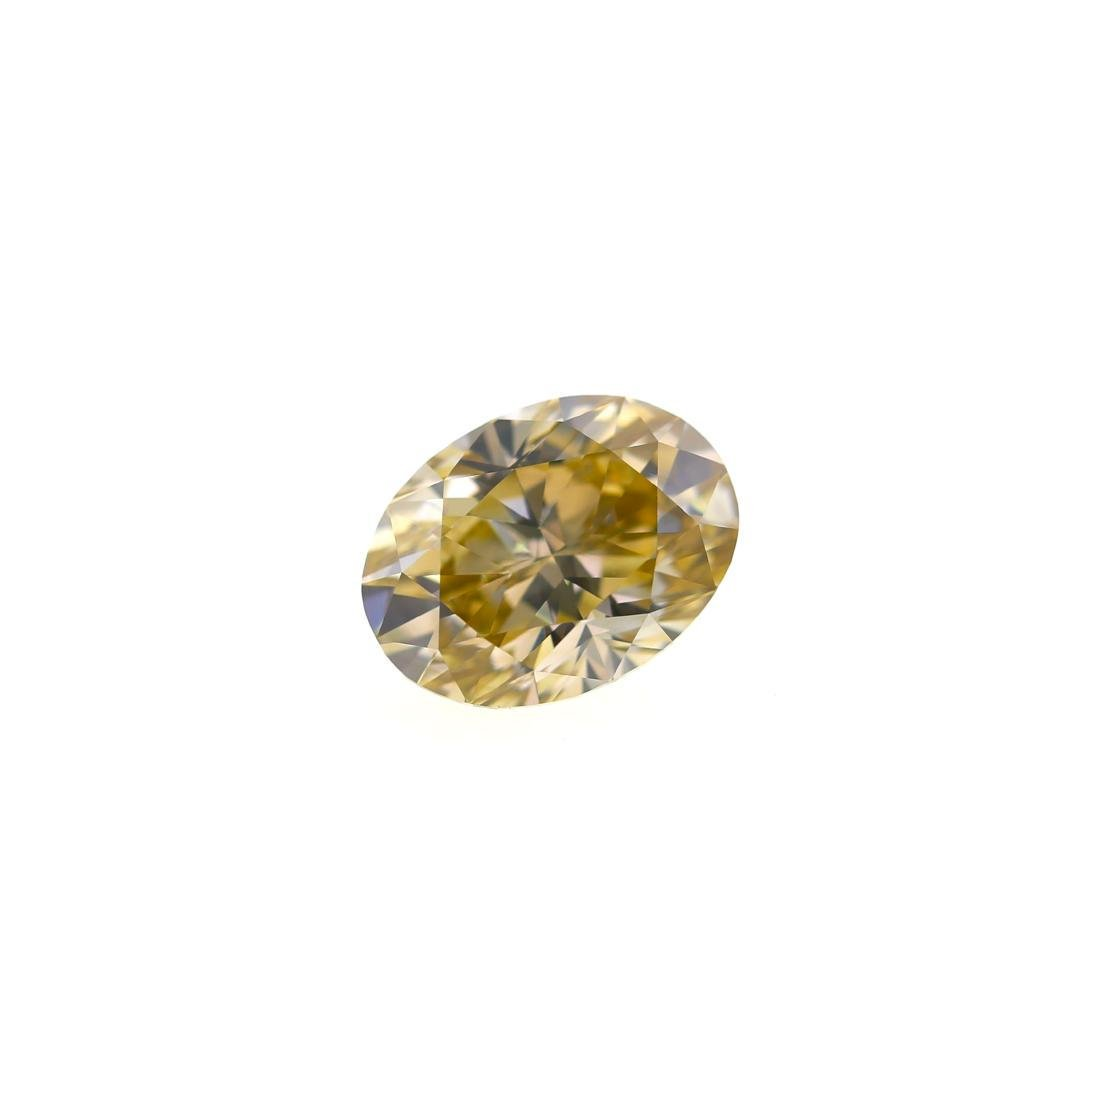 3.54 Ct. Natural Fancy Light Brownish Yellow Oval Shape